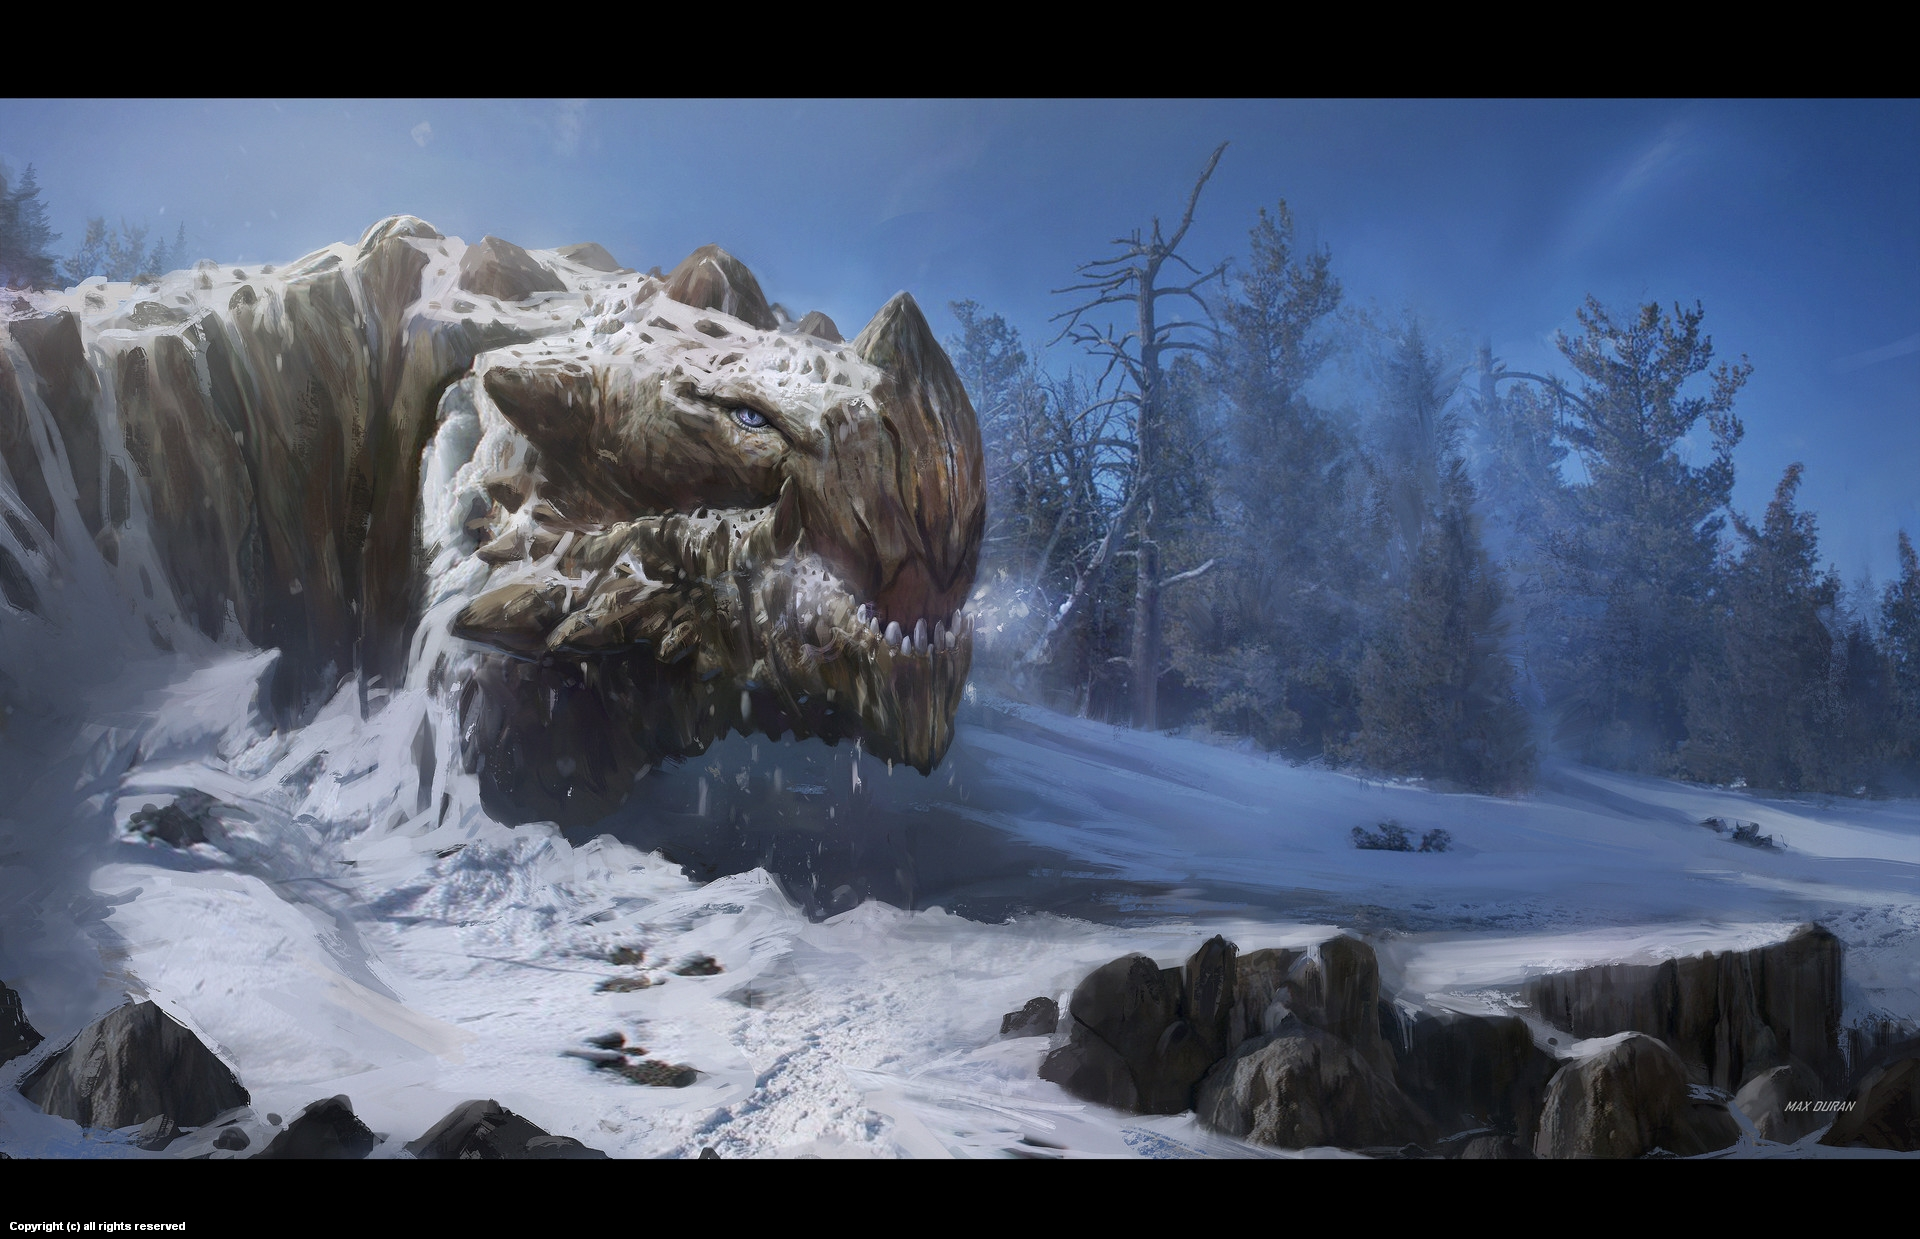 Wake up mountain dragon Artwork by Max Duran